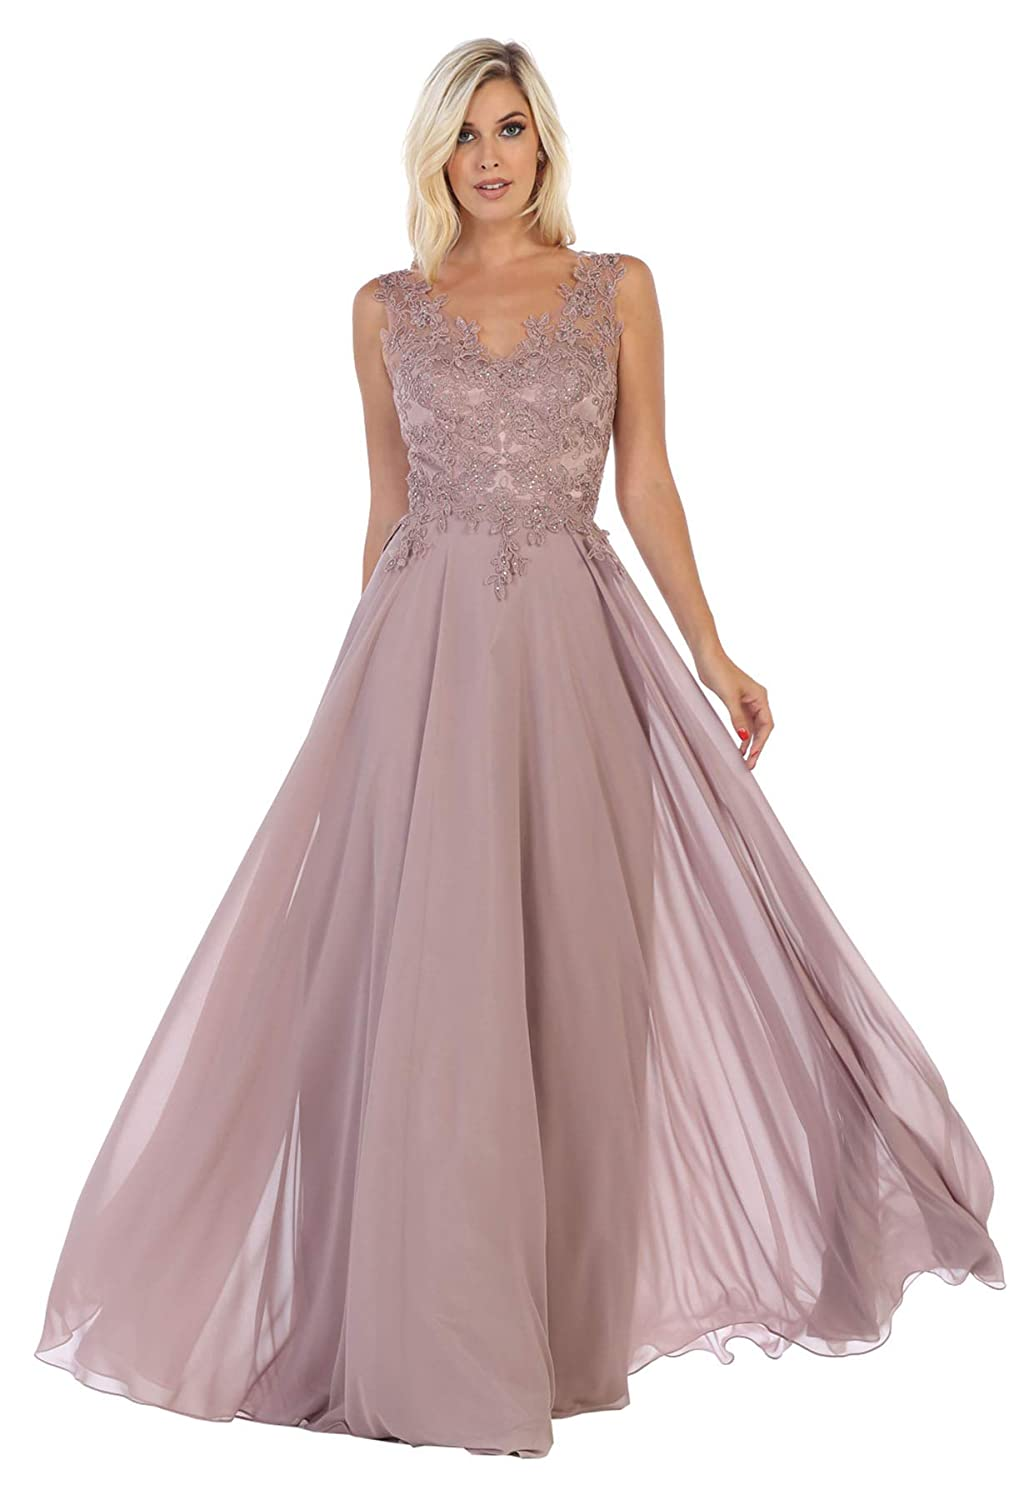 Mauve Formal Dress Shops Inc FDS1610 Prom Flowy Designer Formal Dress